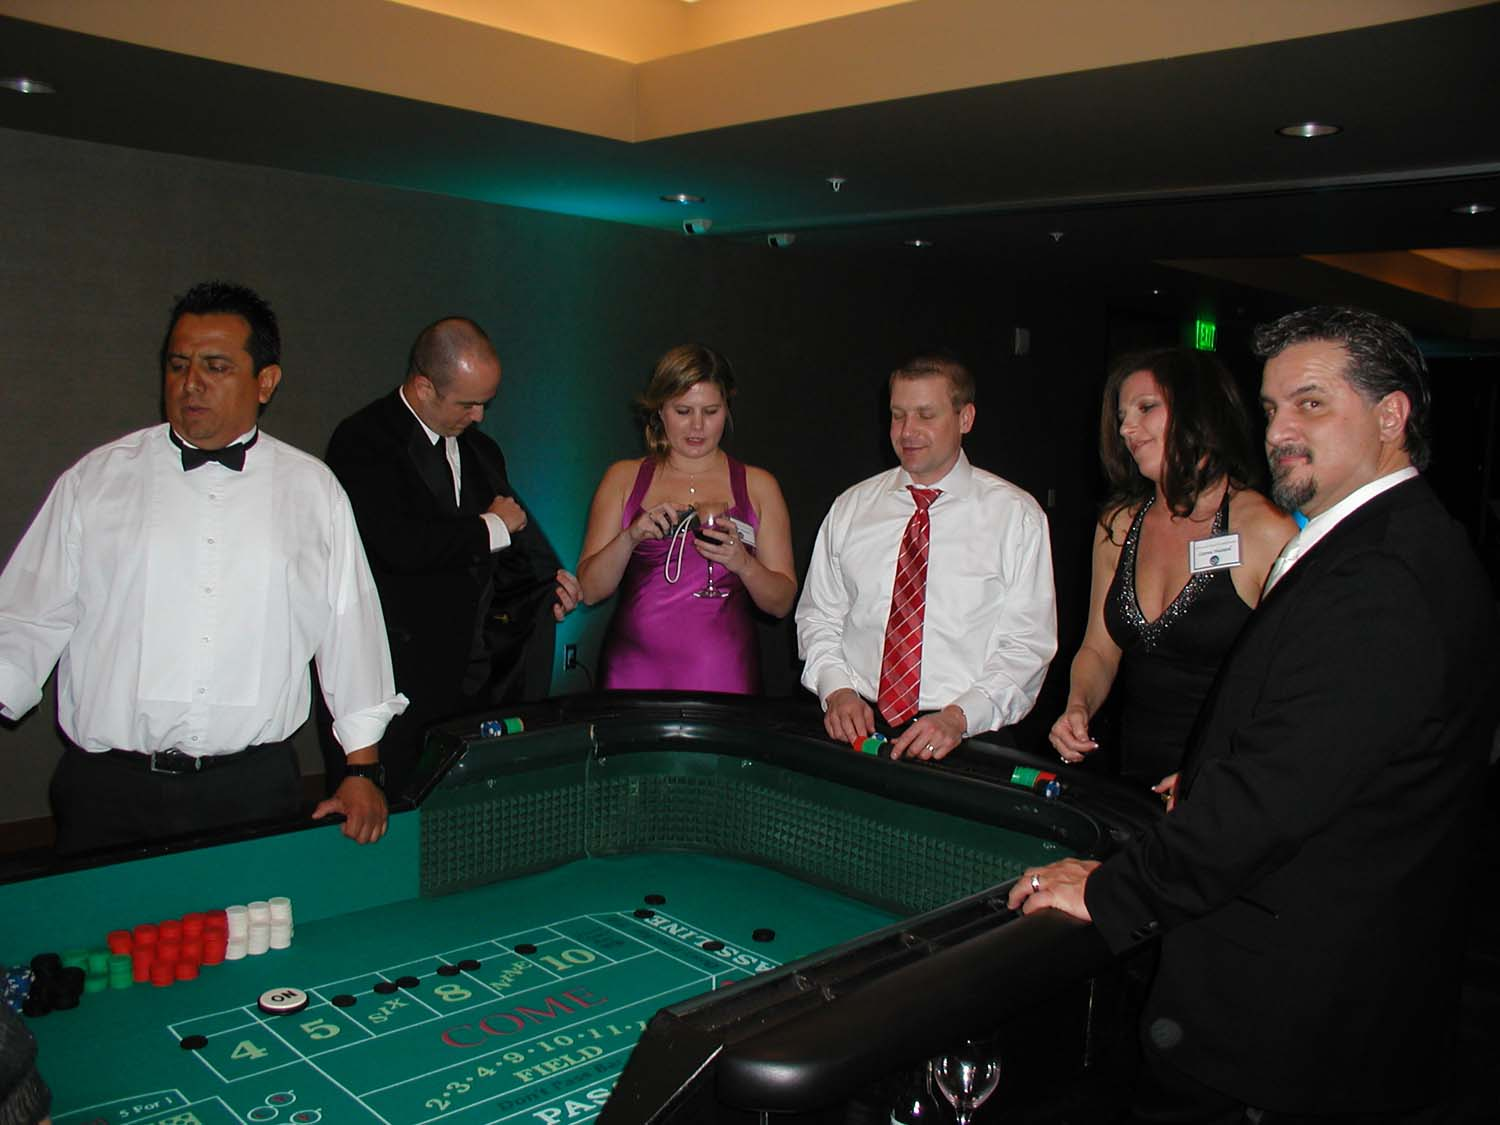 Casino Night Fundraising Ideas in Tucson, AZ